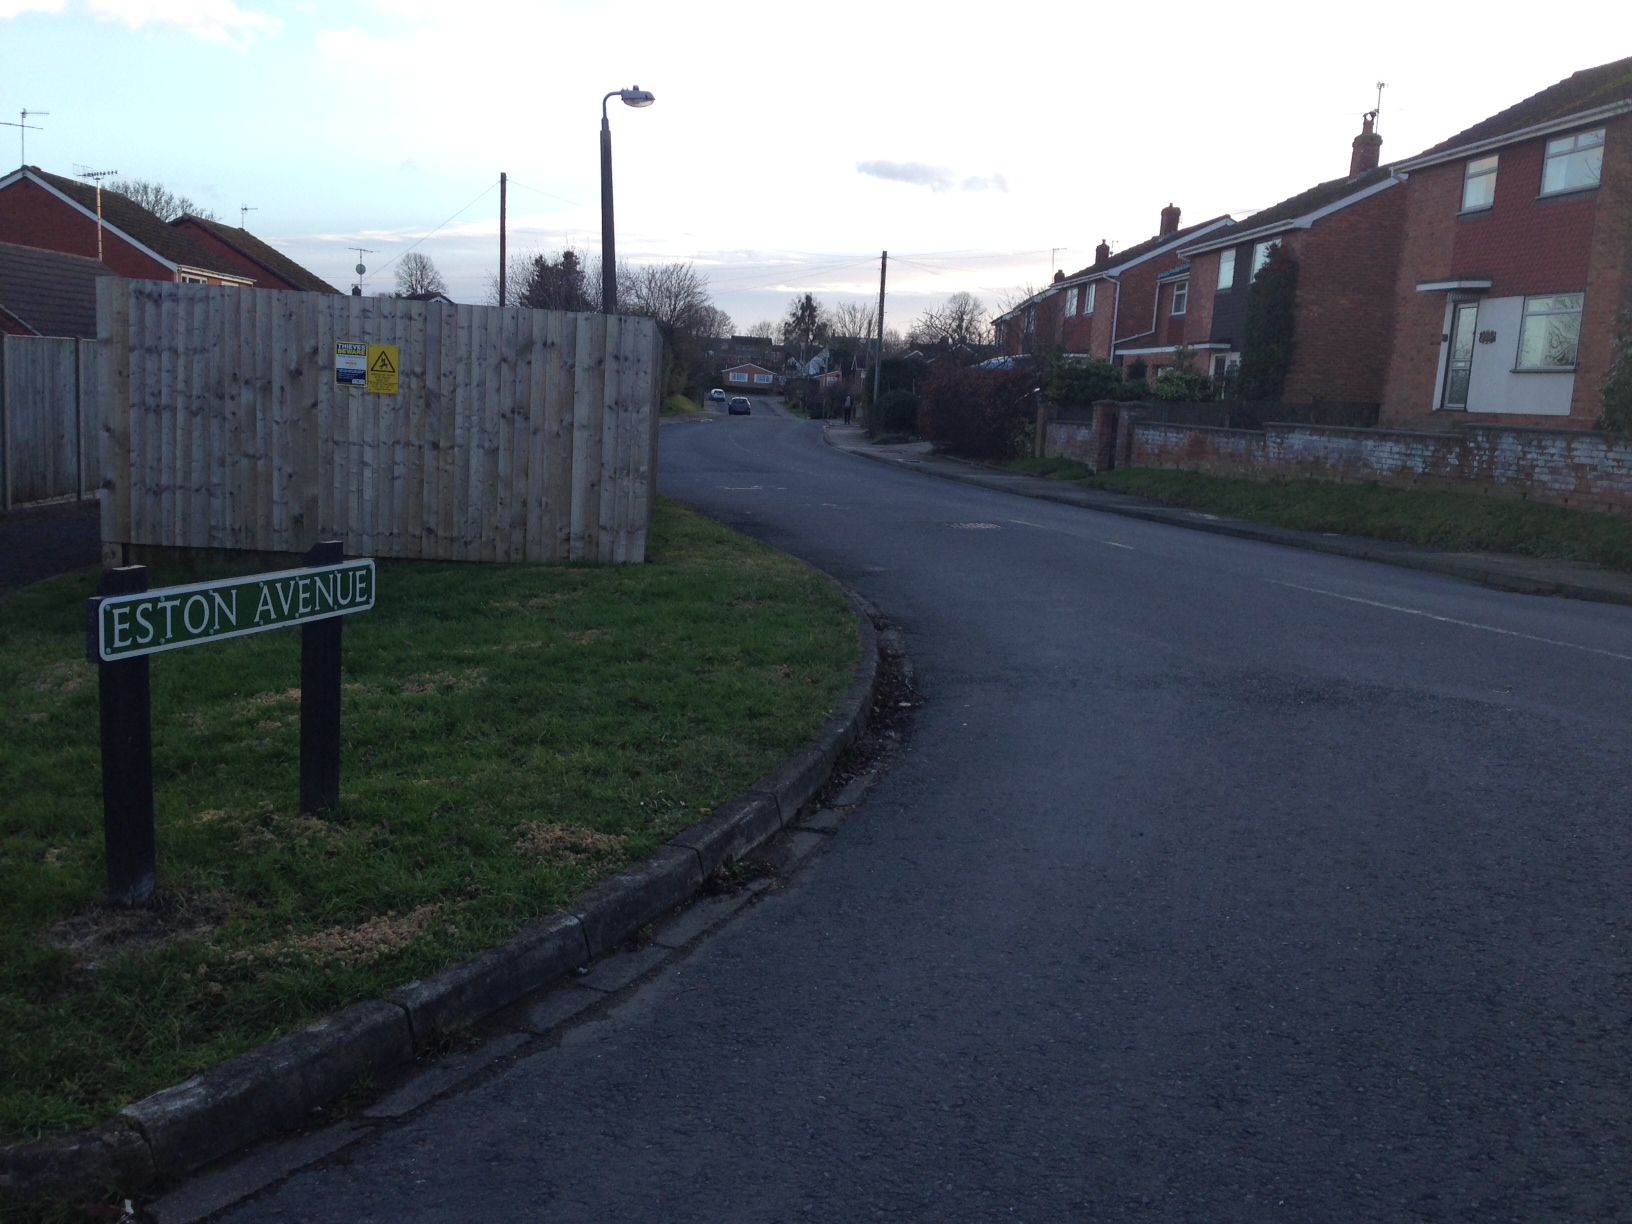 SHOCK: Residents of Eston Avenue, Malvern, are reeling after a pensioner died from a head injury. A man was arrested.